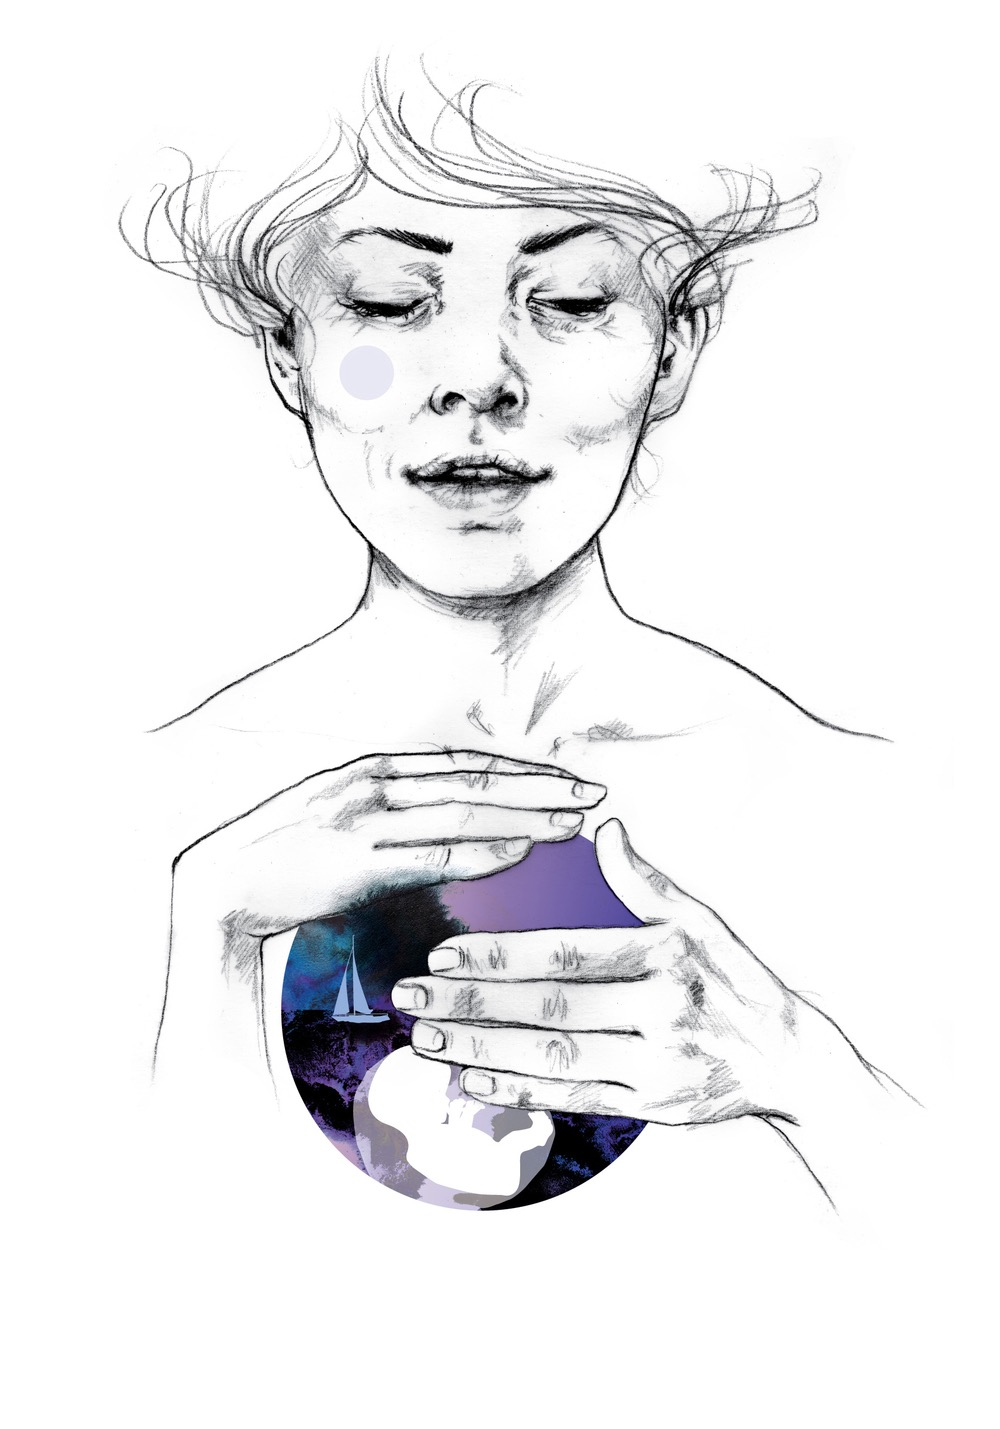 illustrator, illustrators, illustration, illustrations, woman, women, world, globe, boat, boats, hand, hands, hold, holding, simple, outline